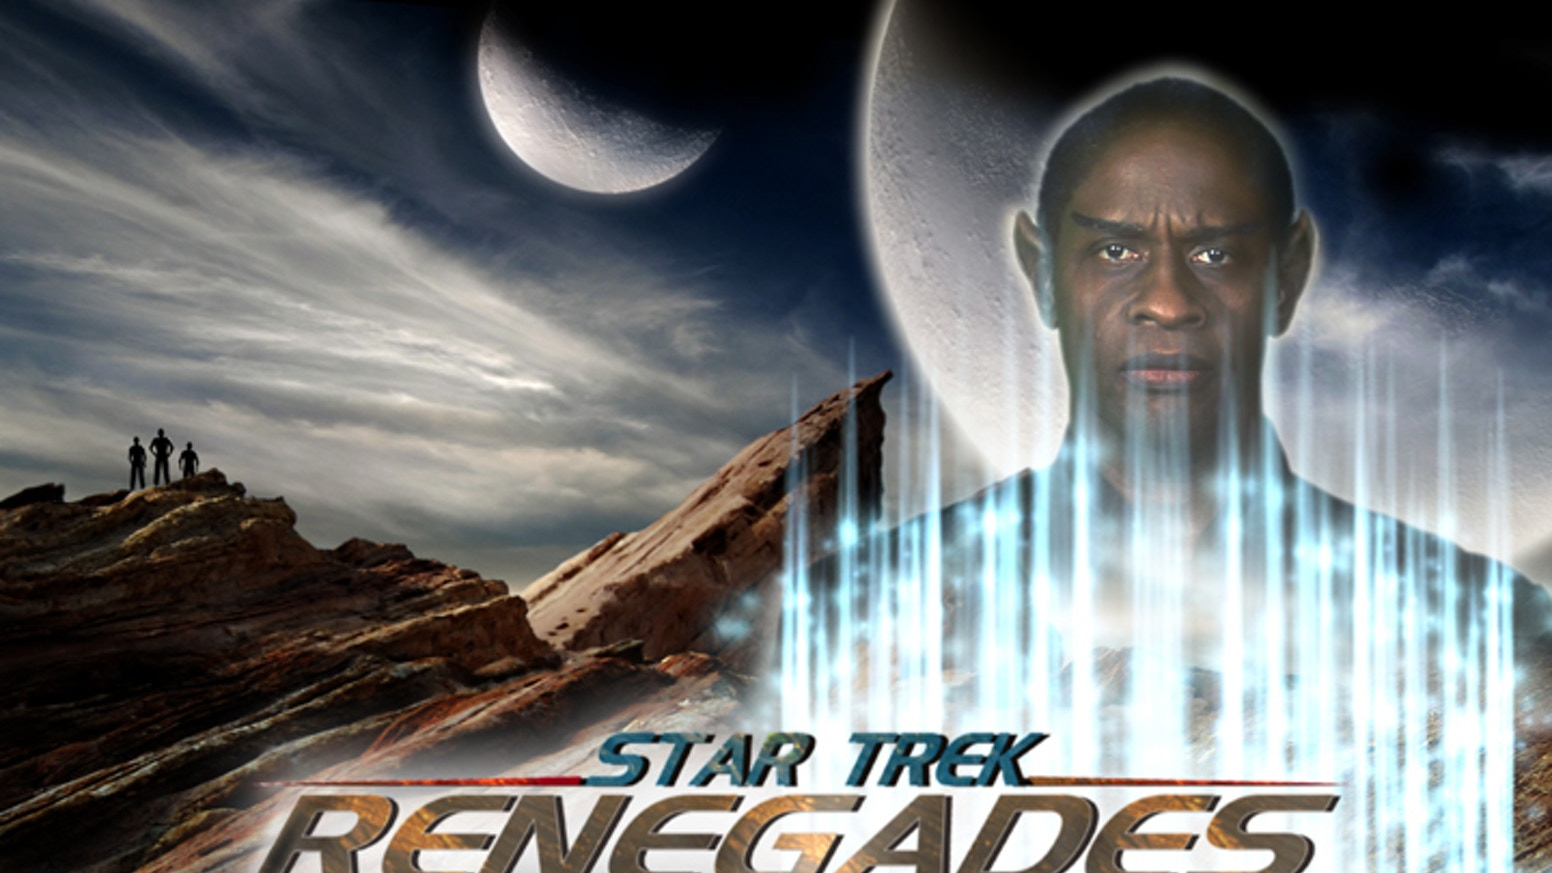 An exciting new adventure from the creators of Star Trek: Of Gods and Men.  Boldly going where no Trek has gone before!